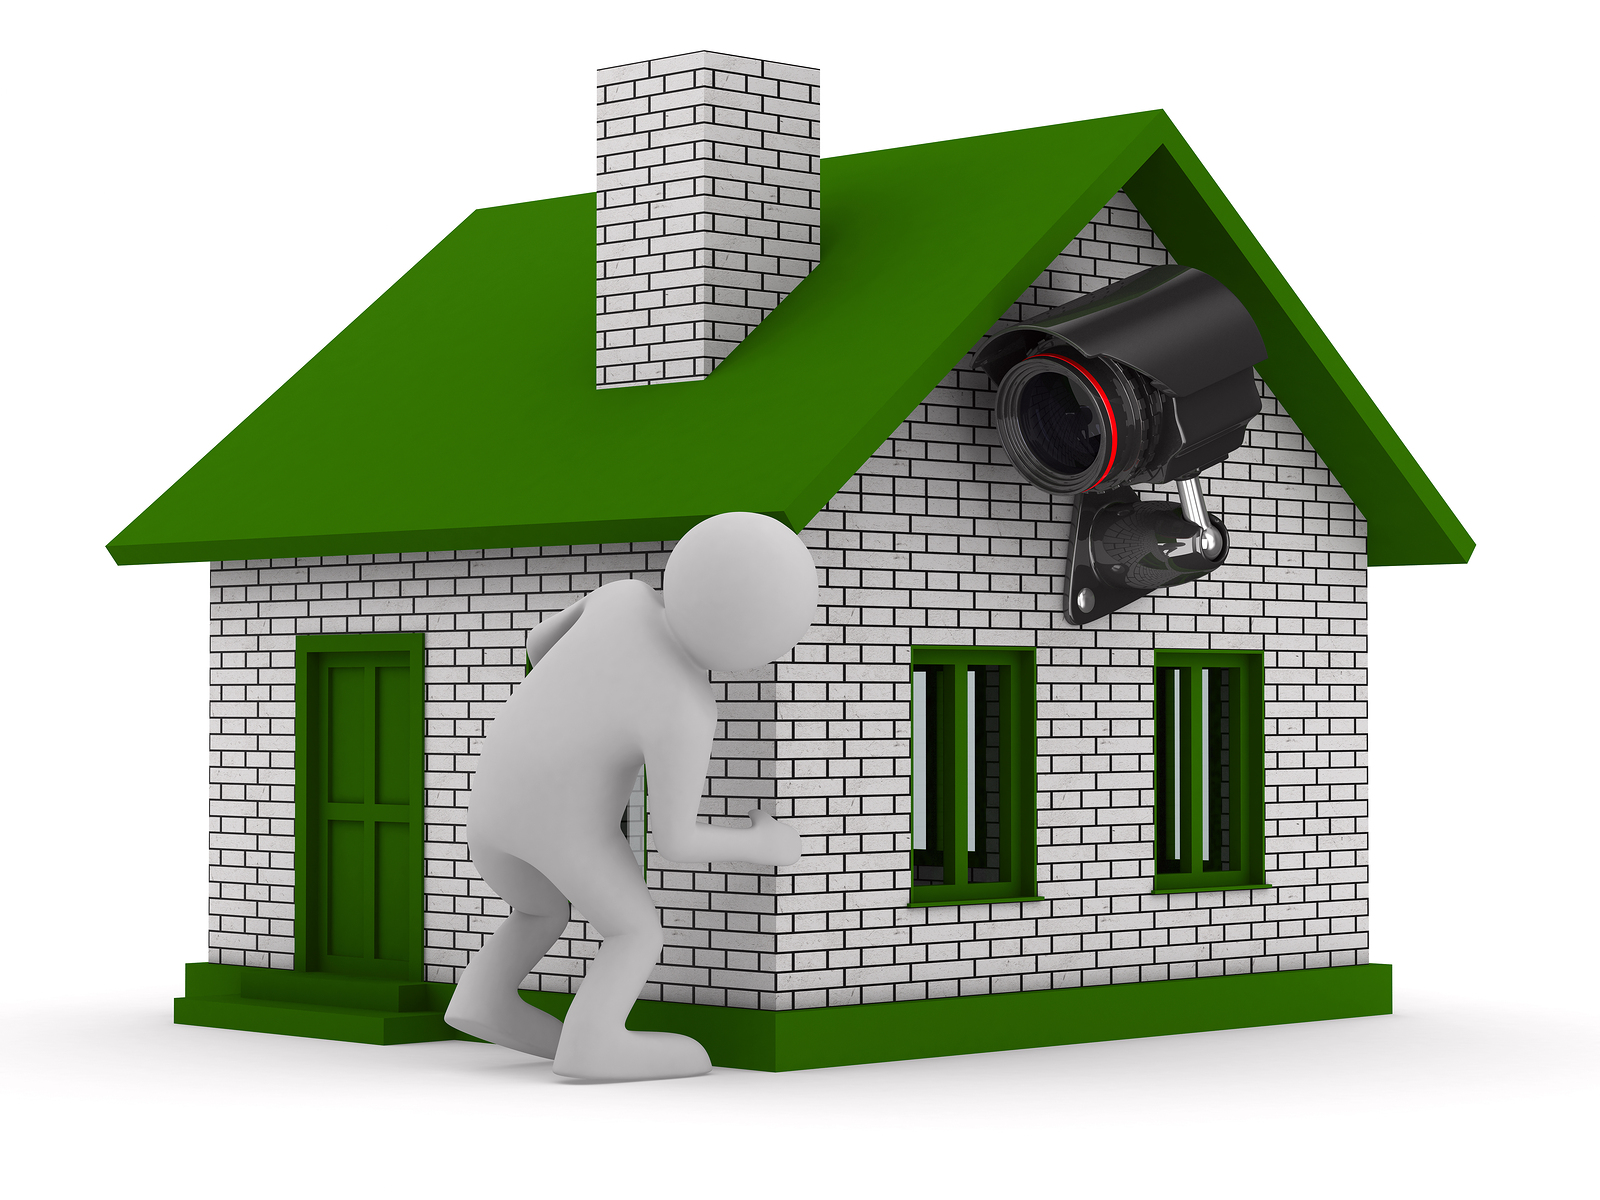 How To Green Up Your Home Security Systems